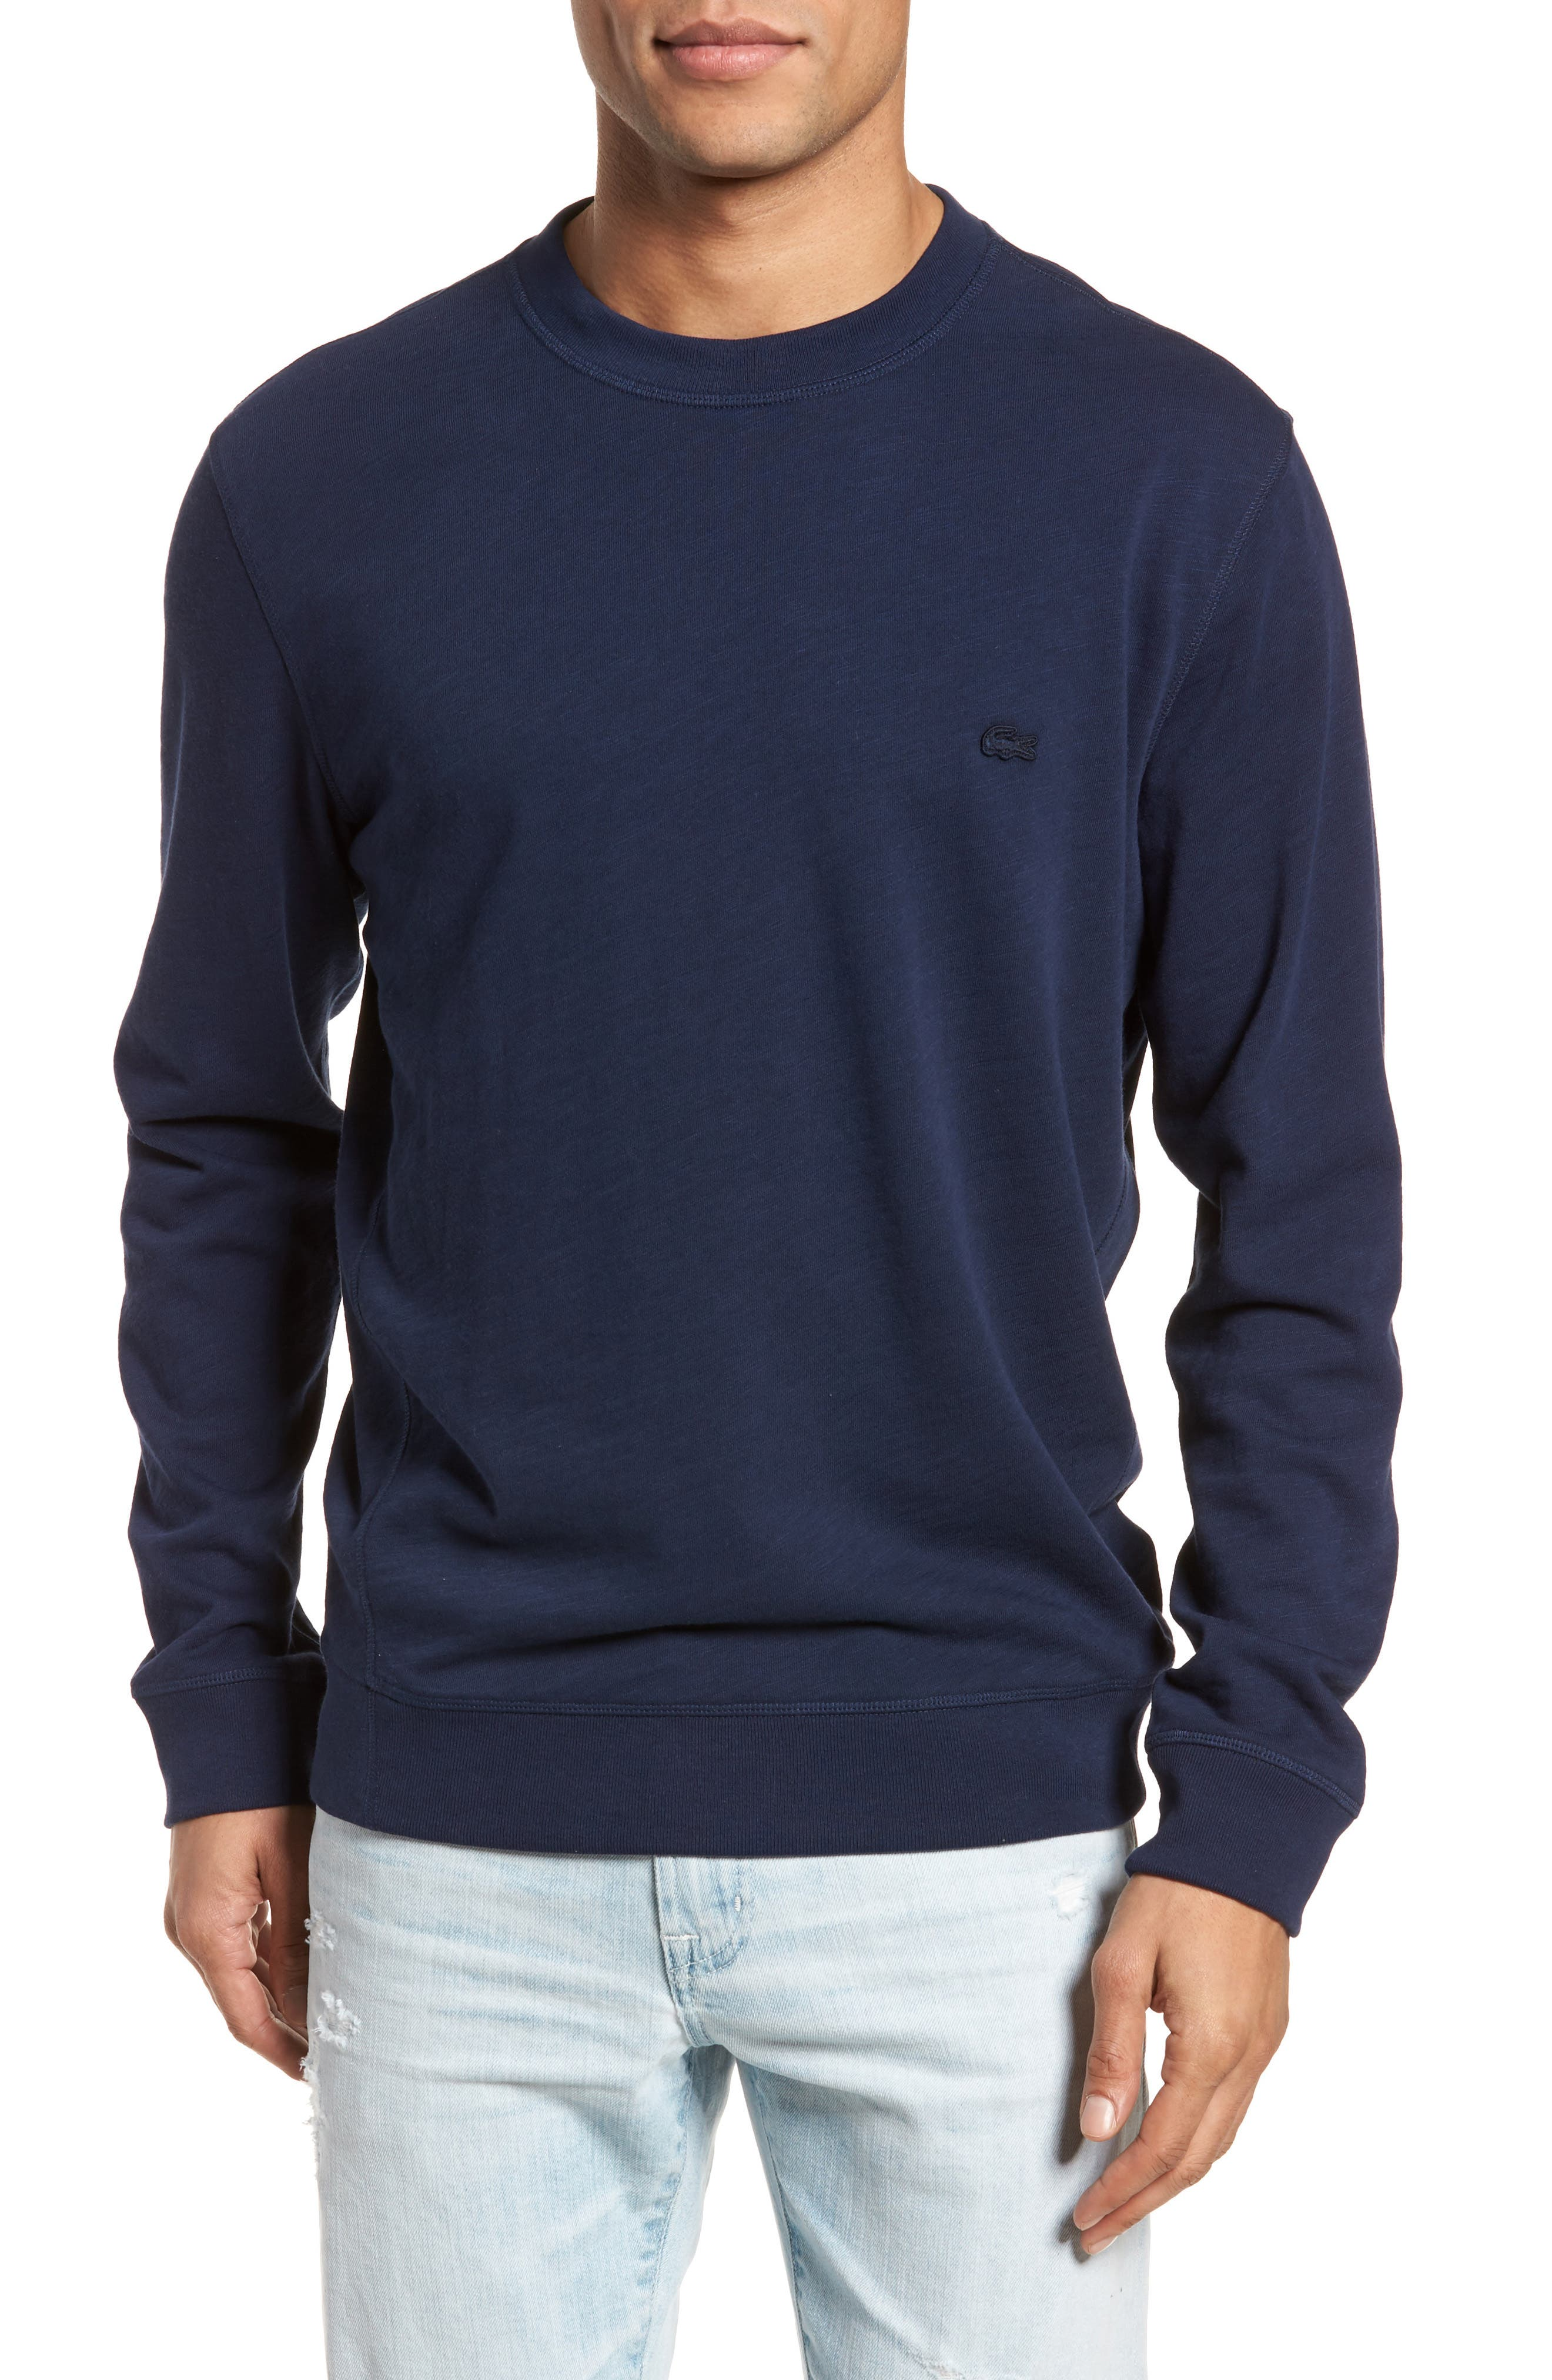 Slim Fit French Terry Sweatshirt,                             Main thumbnail 1, color,                             Navy Blue